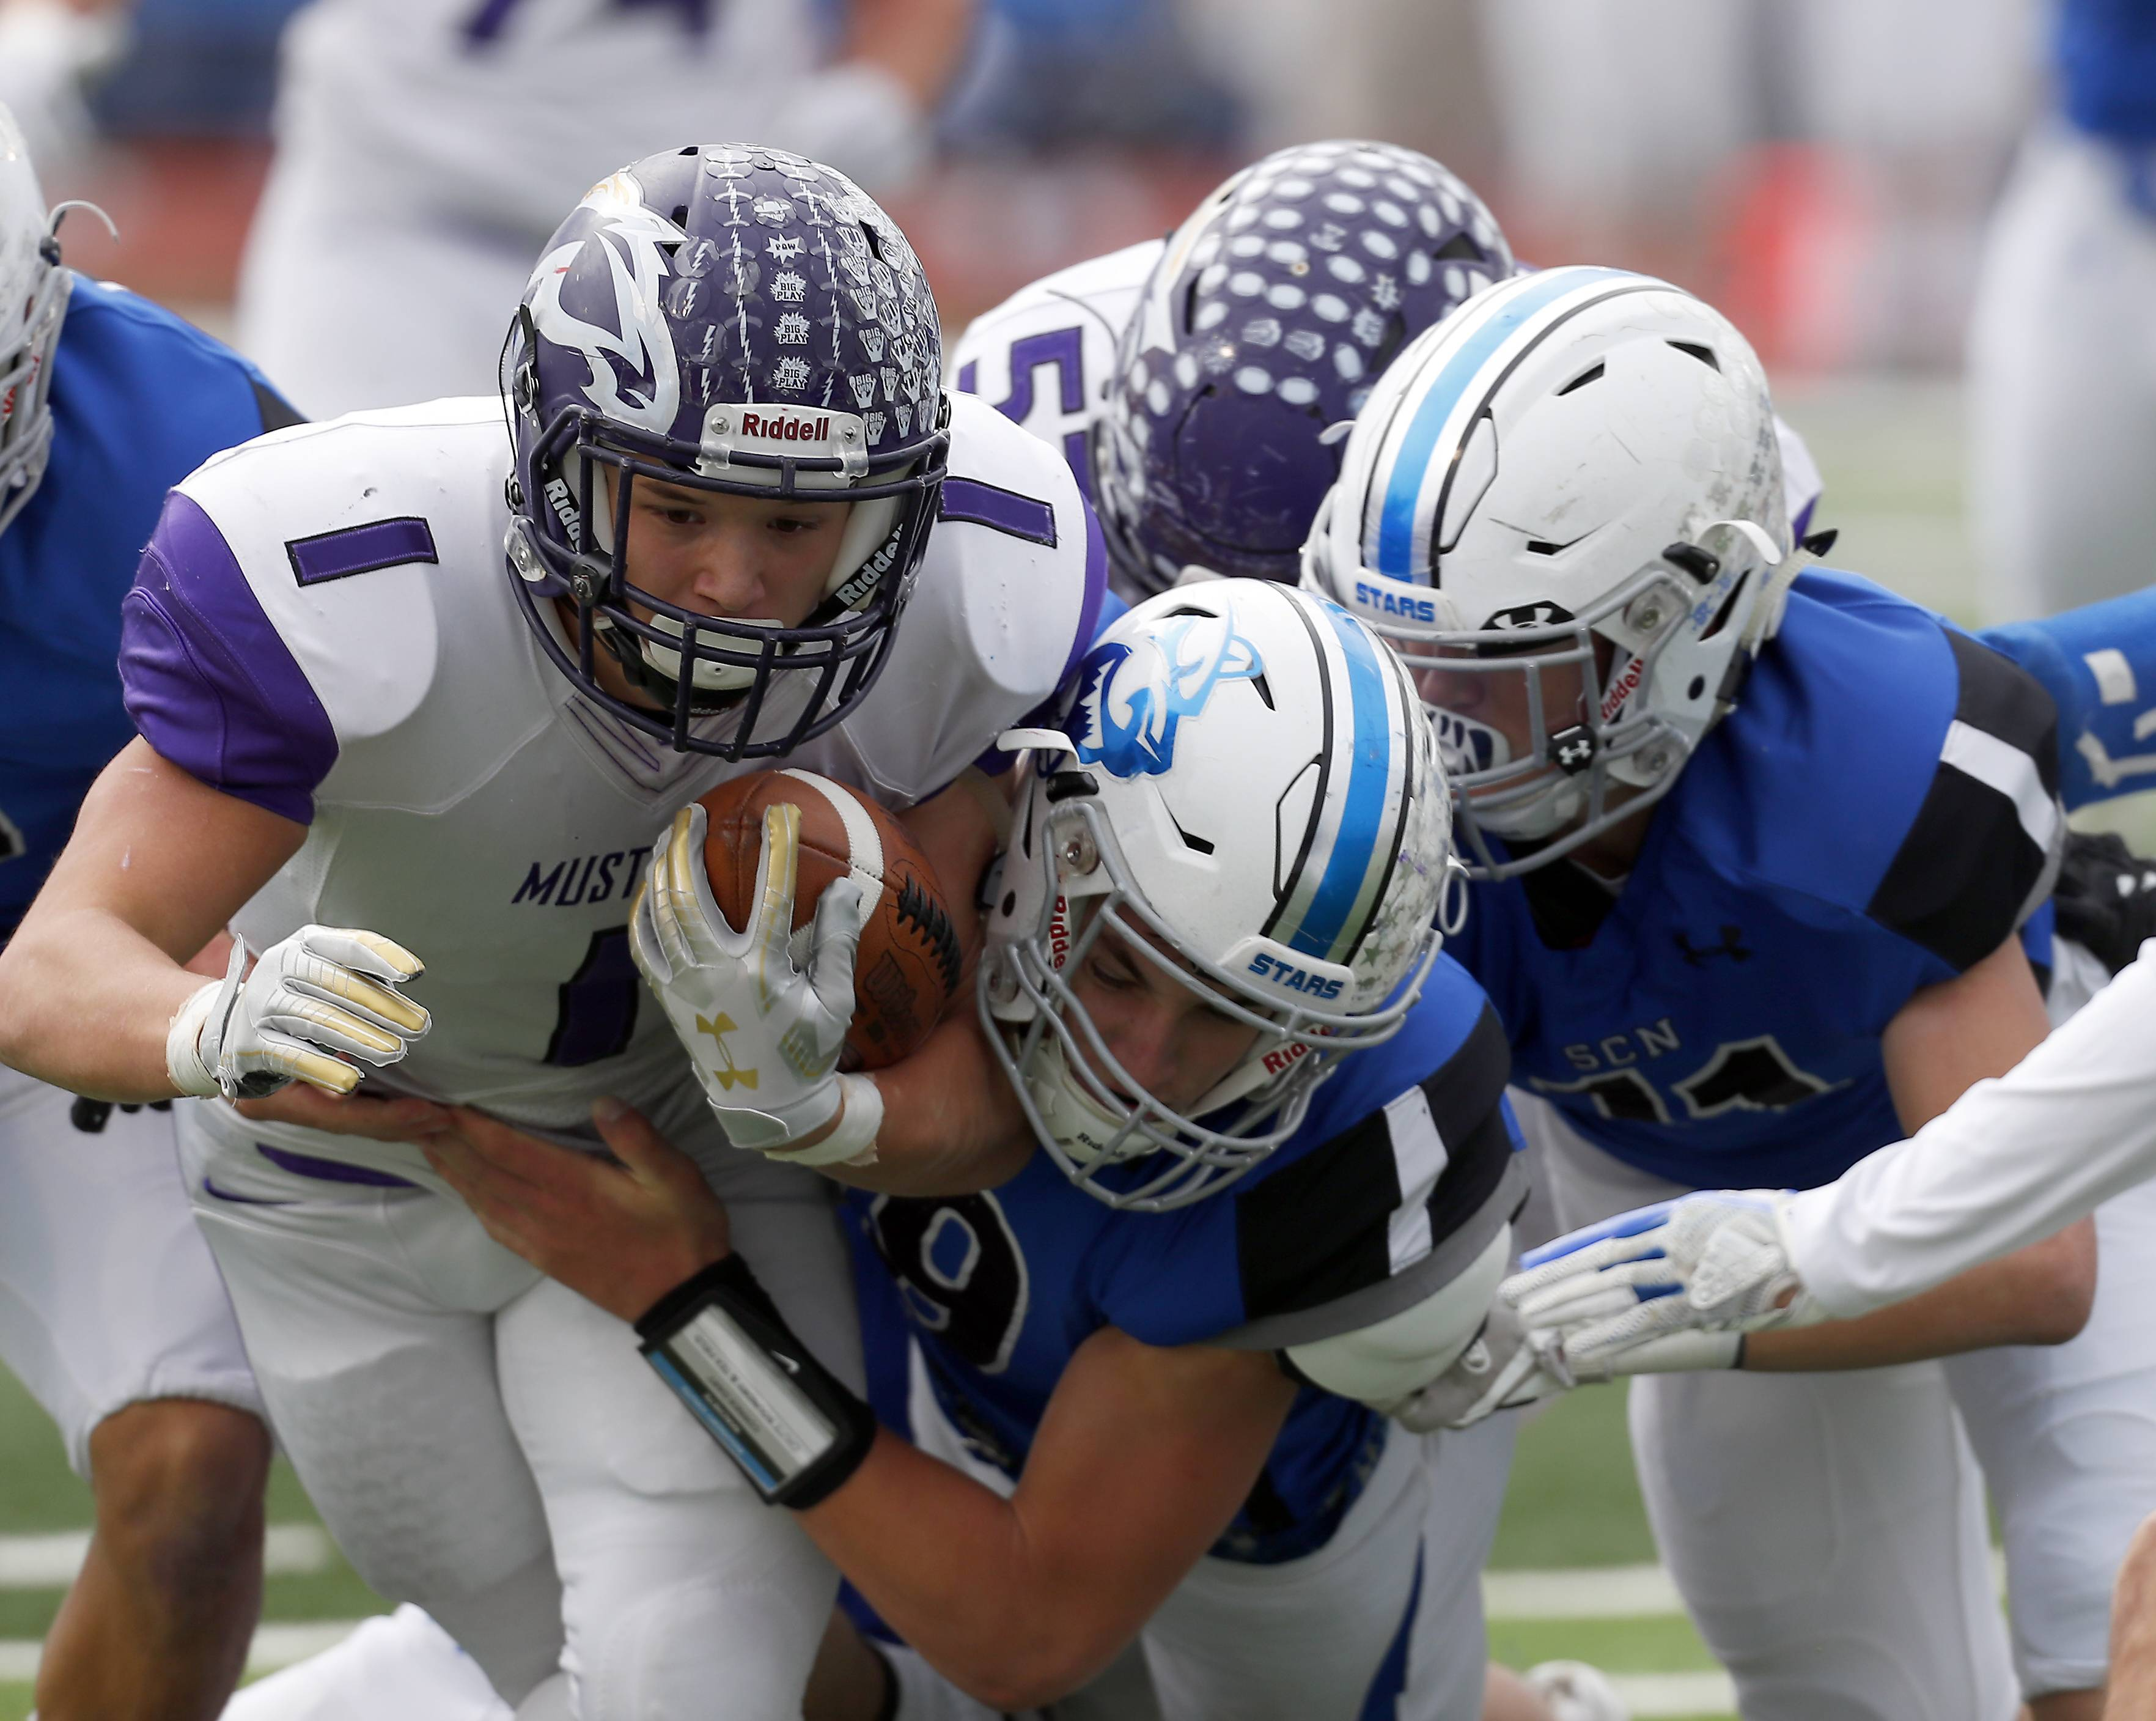 Rolling Meadows' Jace O'Hara (1)j is brought down by a host of St. Charles North players Saturday during IHSA Class 7A playoff football in St. Charles.